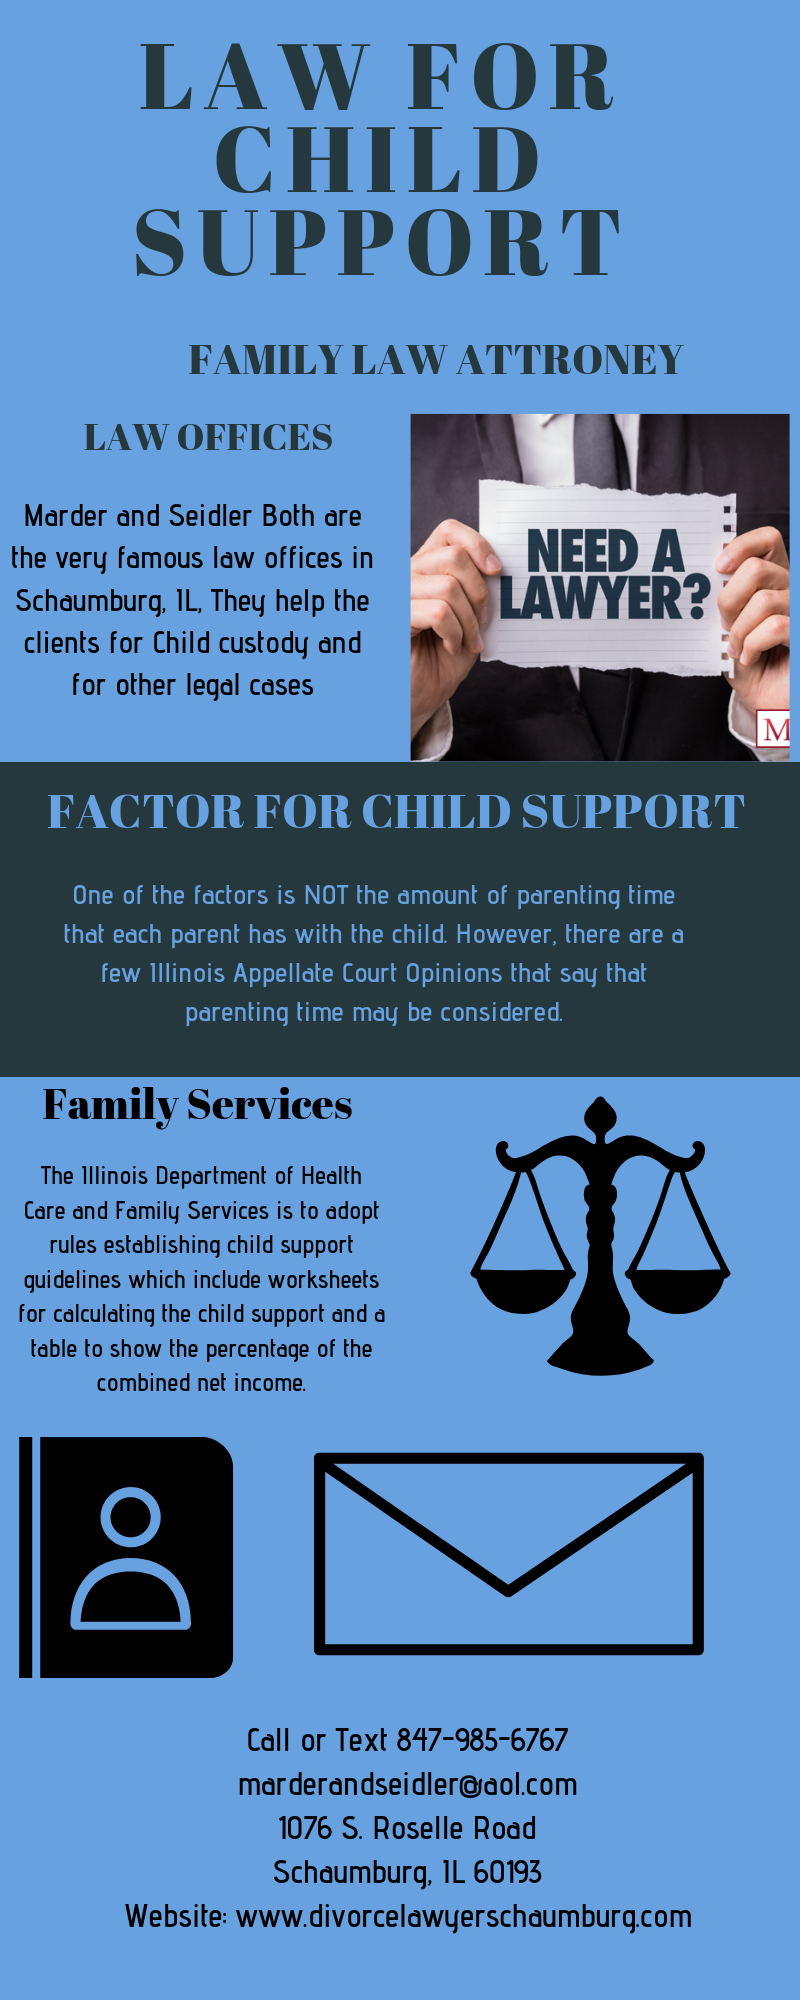 If You want to know about the Law for Child Custody or